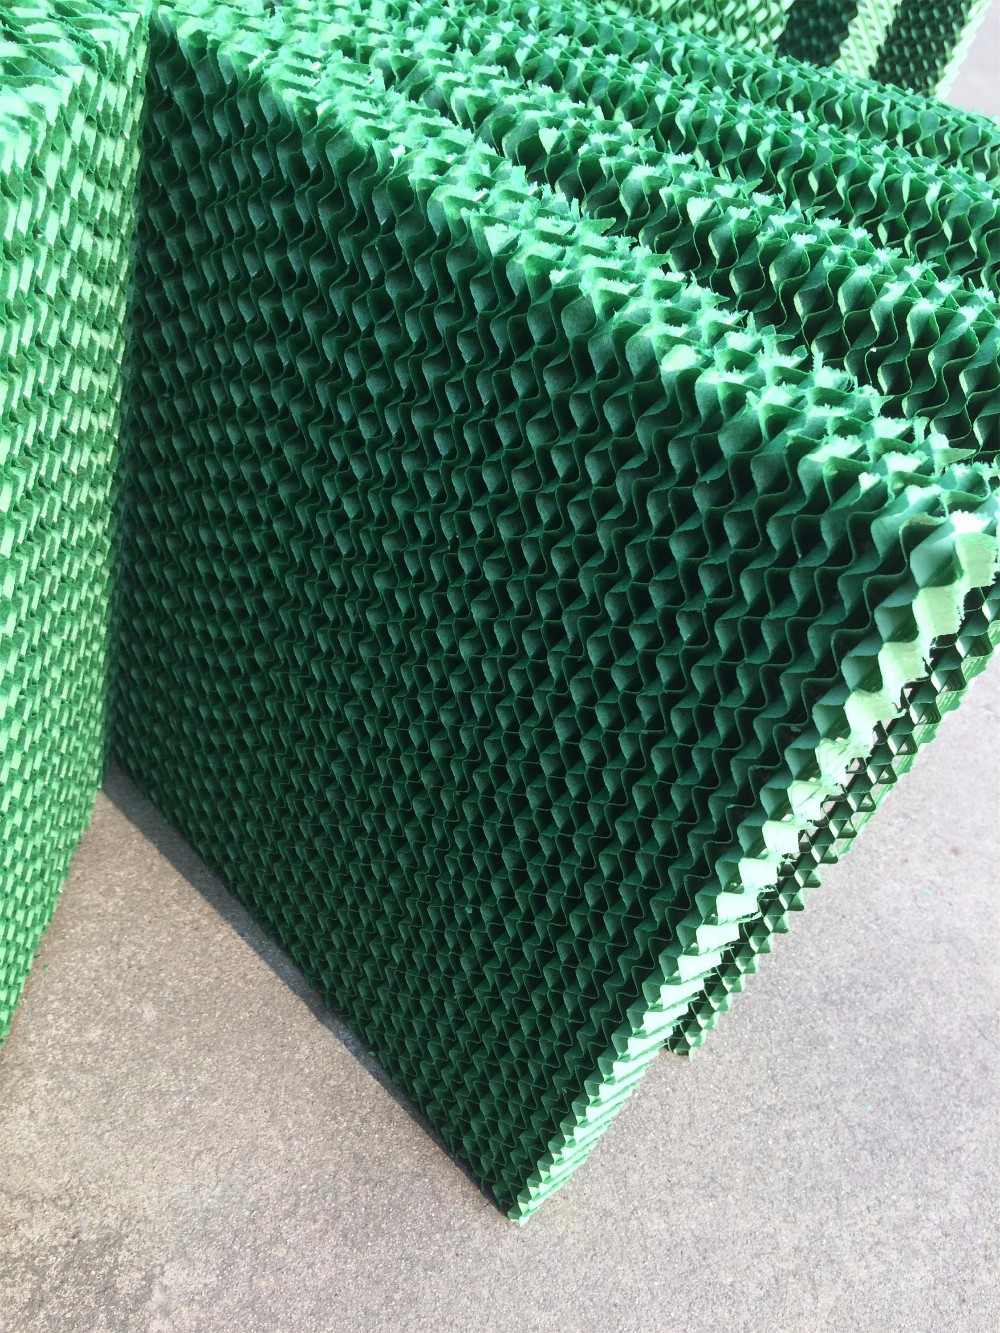 Main cooling pad with green color